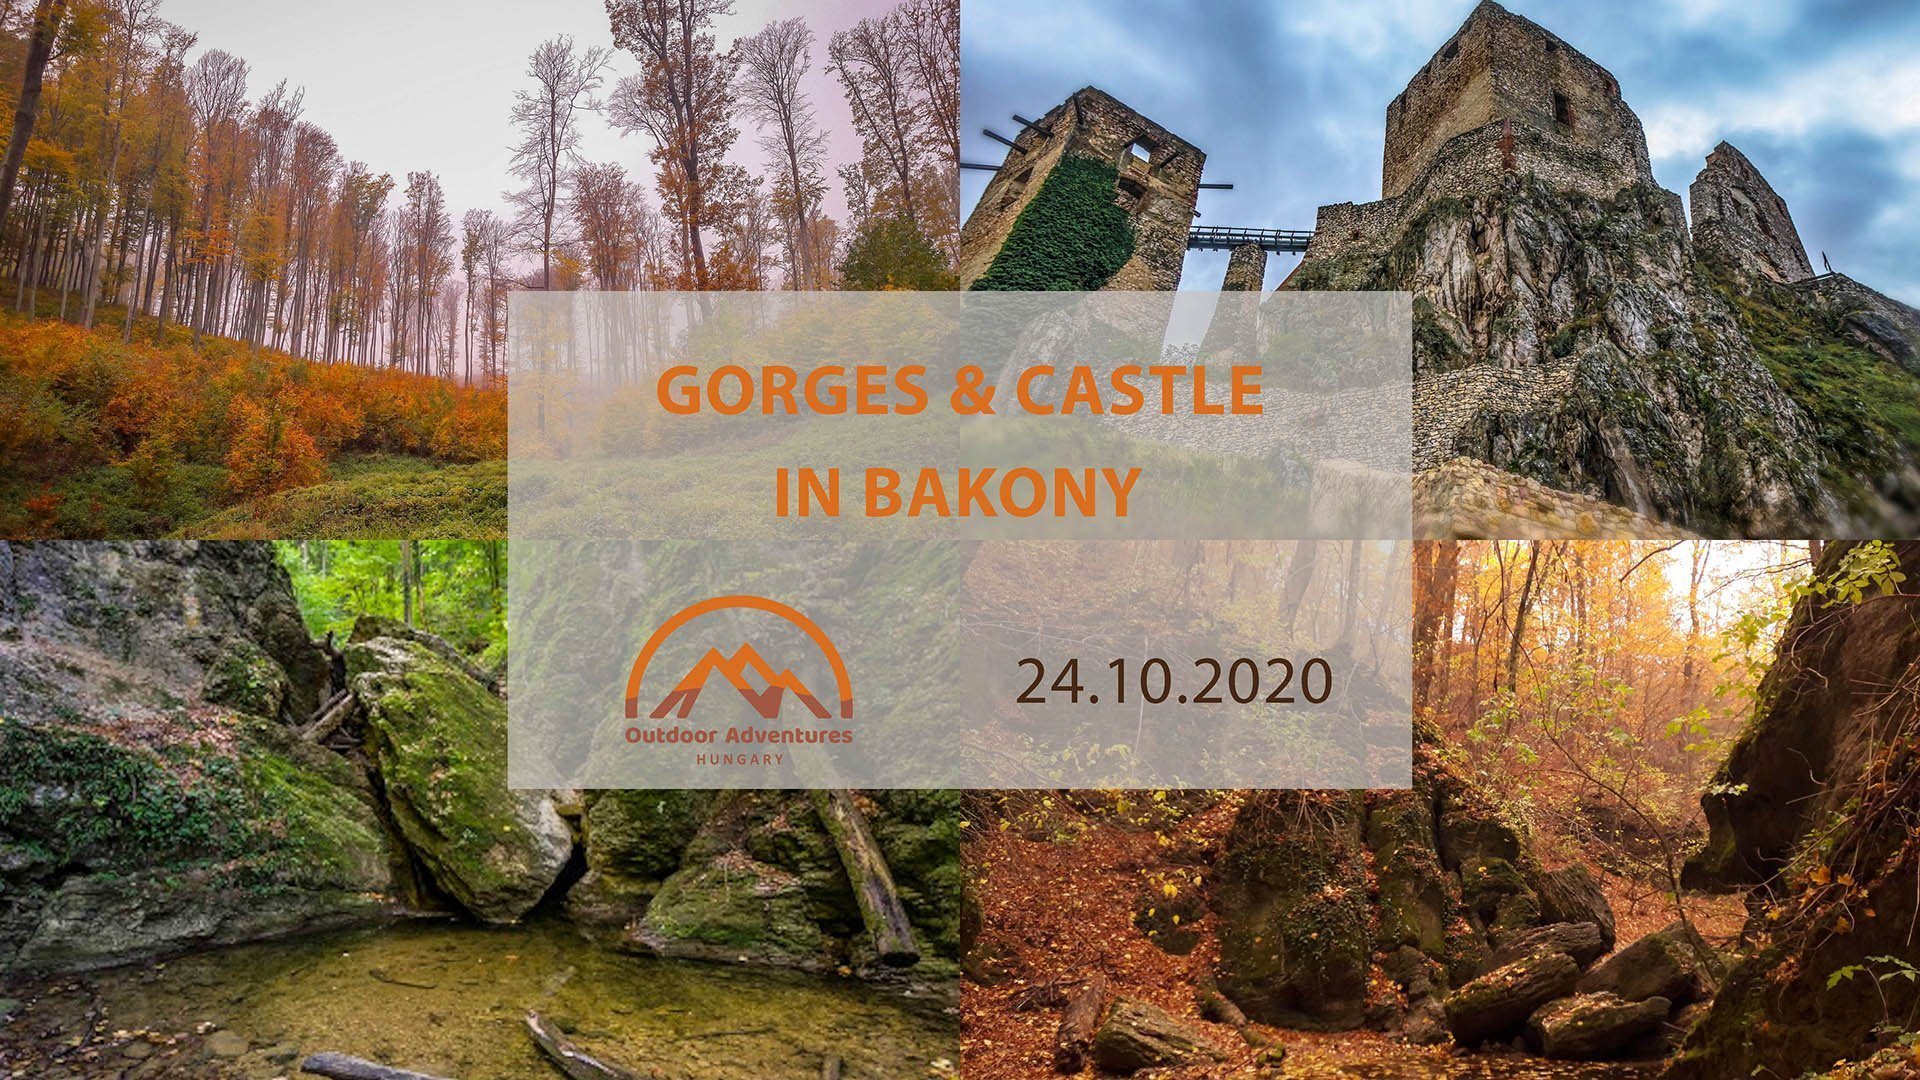 Gorges and Castle - Hike in Bakony